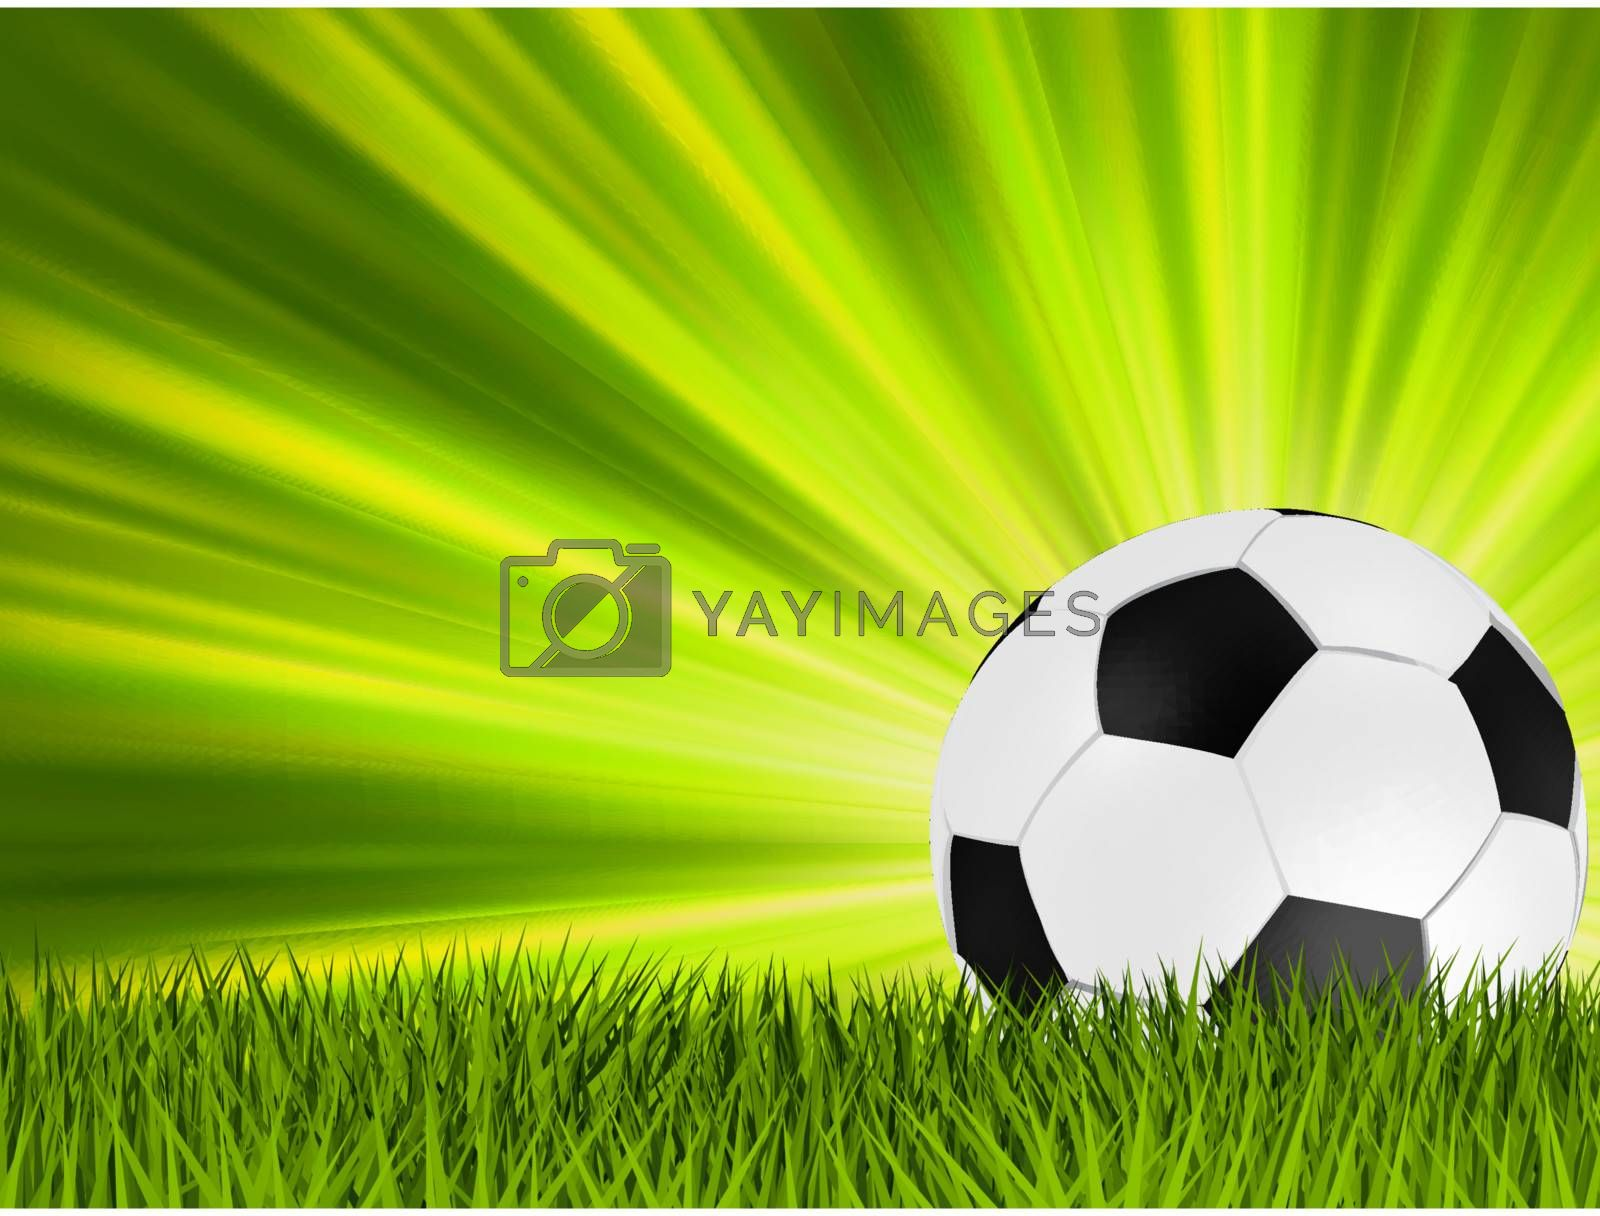 Football or soccer ball on grass with a starburst backgrond. EPS 8 vector file included